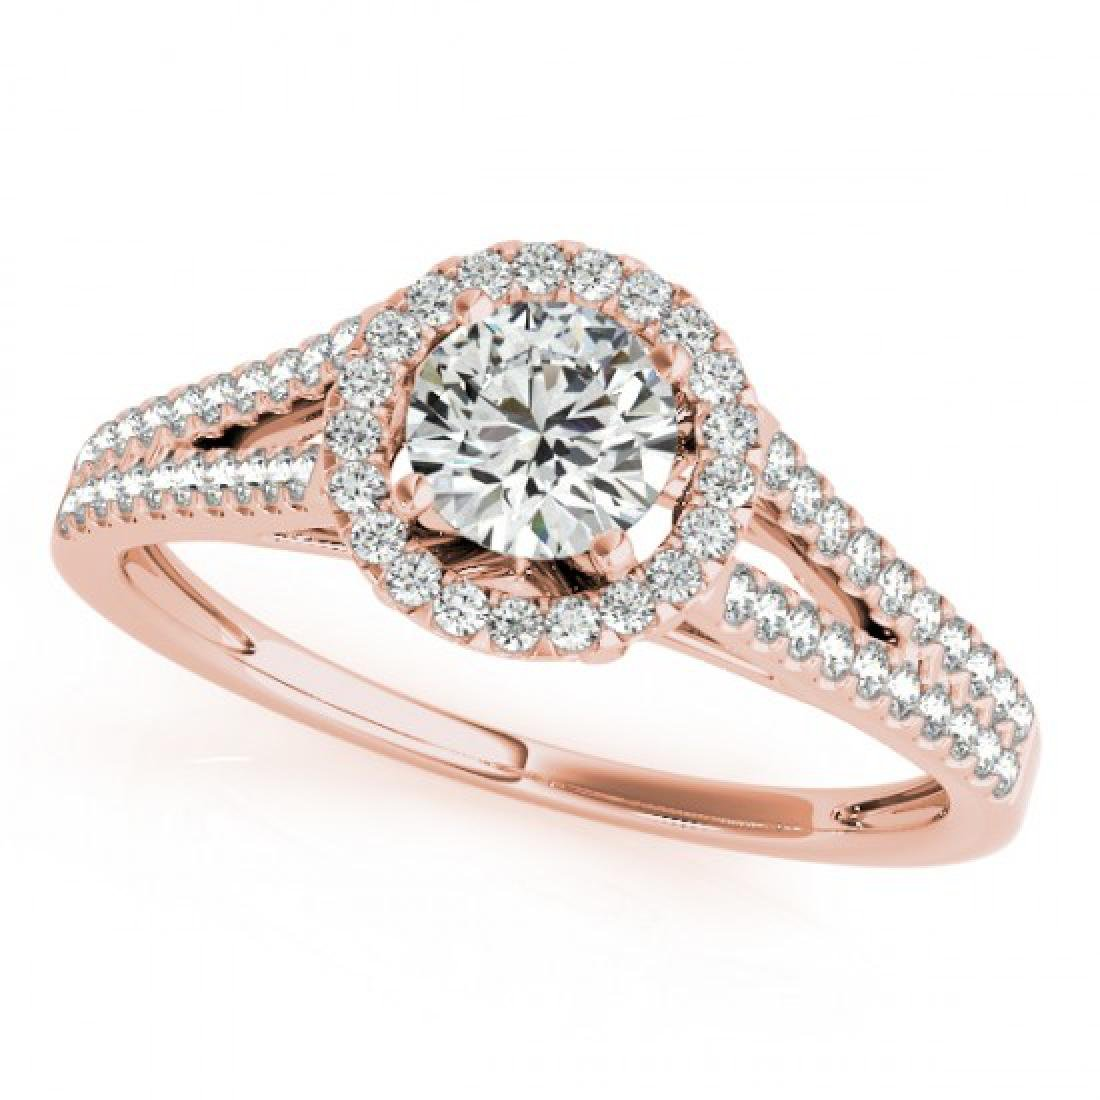 0.8 CTW Certified VS/SI Diamond Solitaire Halo Ring 14K